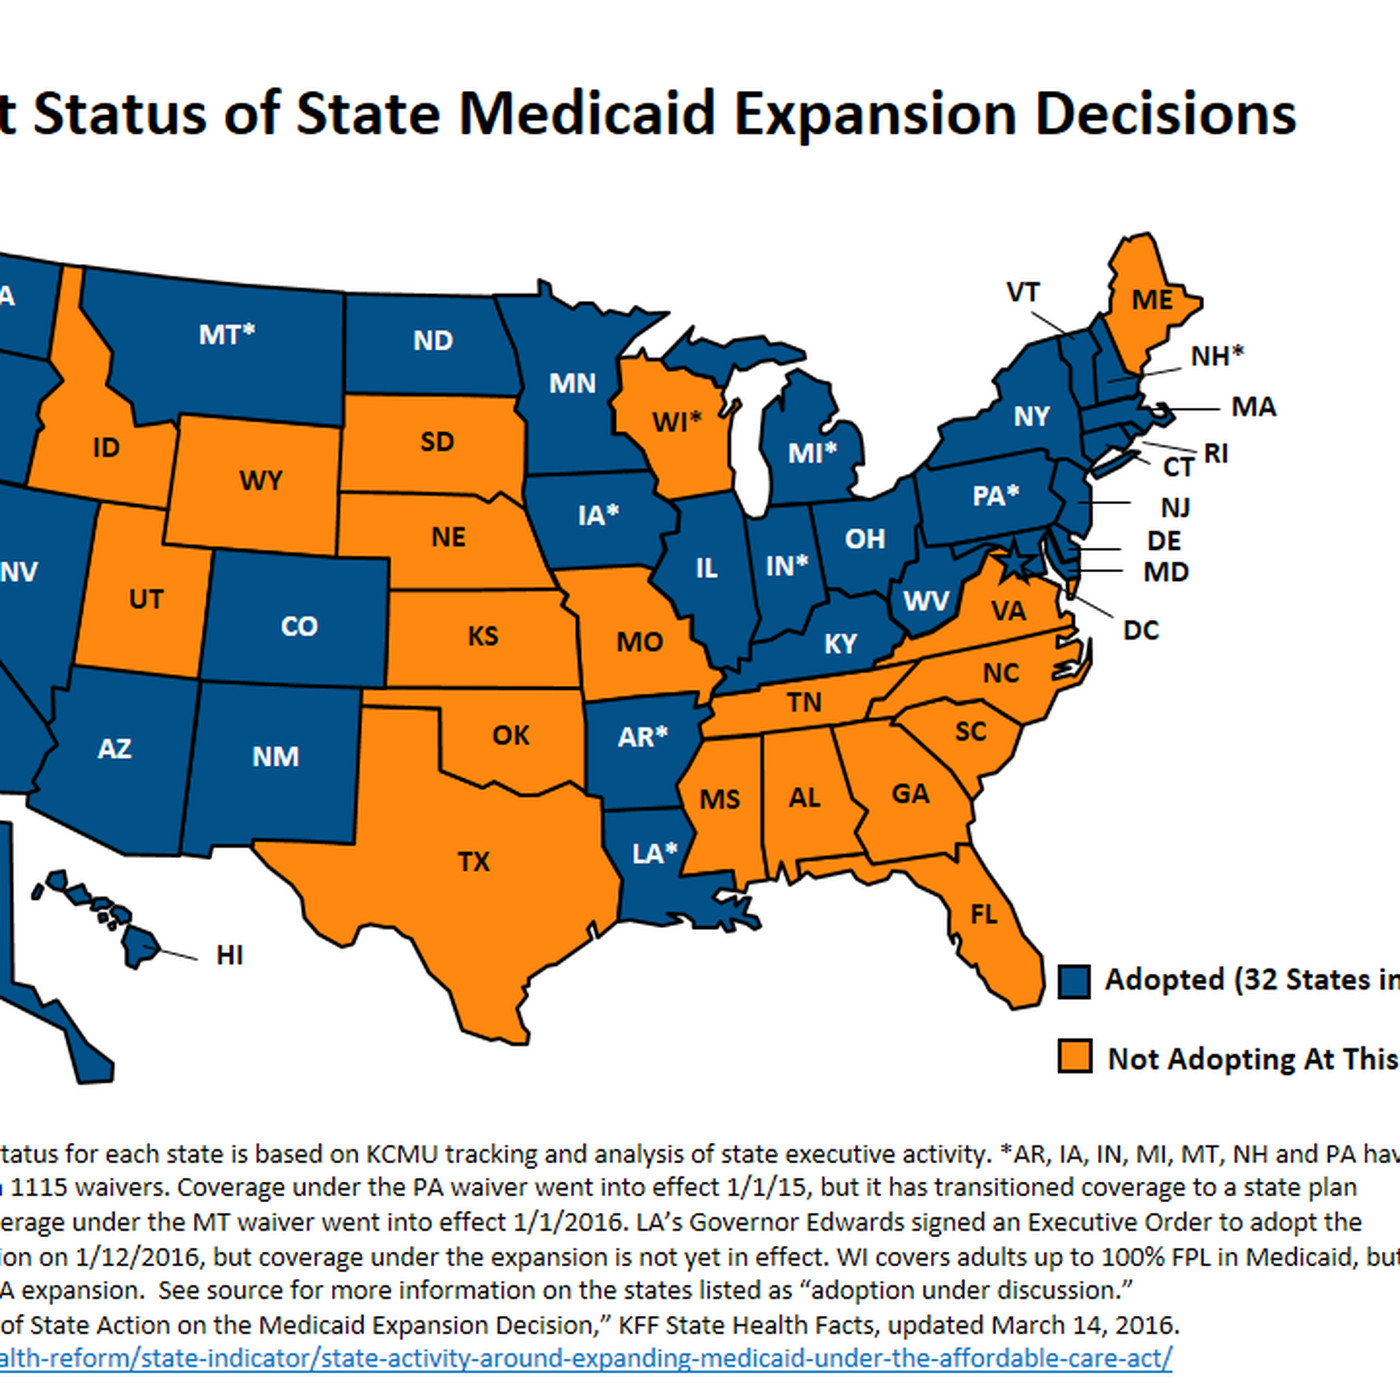 Is Obamacare available in all states? - Vox on map with all the countries, map of las vegas strip with hotel names, map of usa with state lines, map of canada and provincial capitals, map of kansas, map of estuaries around the world, map of florida, map of tennessee, map of michigan, map of state s, traveling the states, us map for states, map of obelisks around the world, outline of all states, world map and states, map of alabama, map of new york, map of canada provinces, google maps with states,